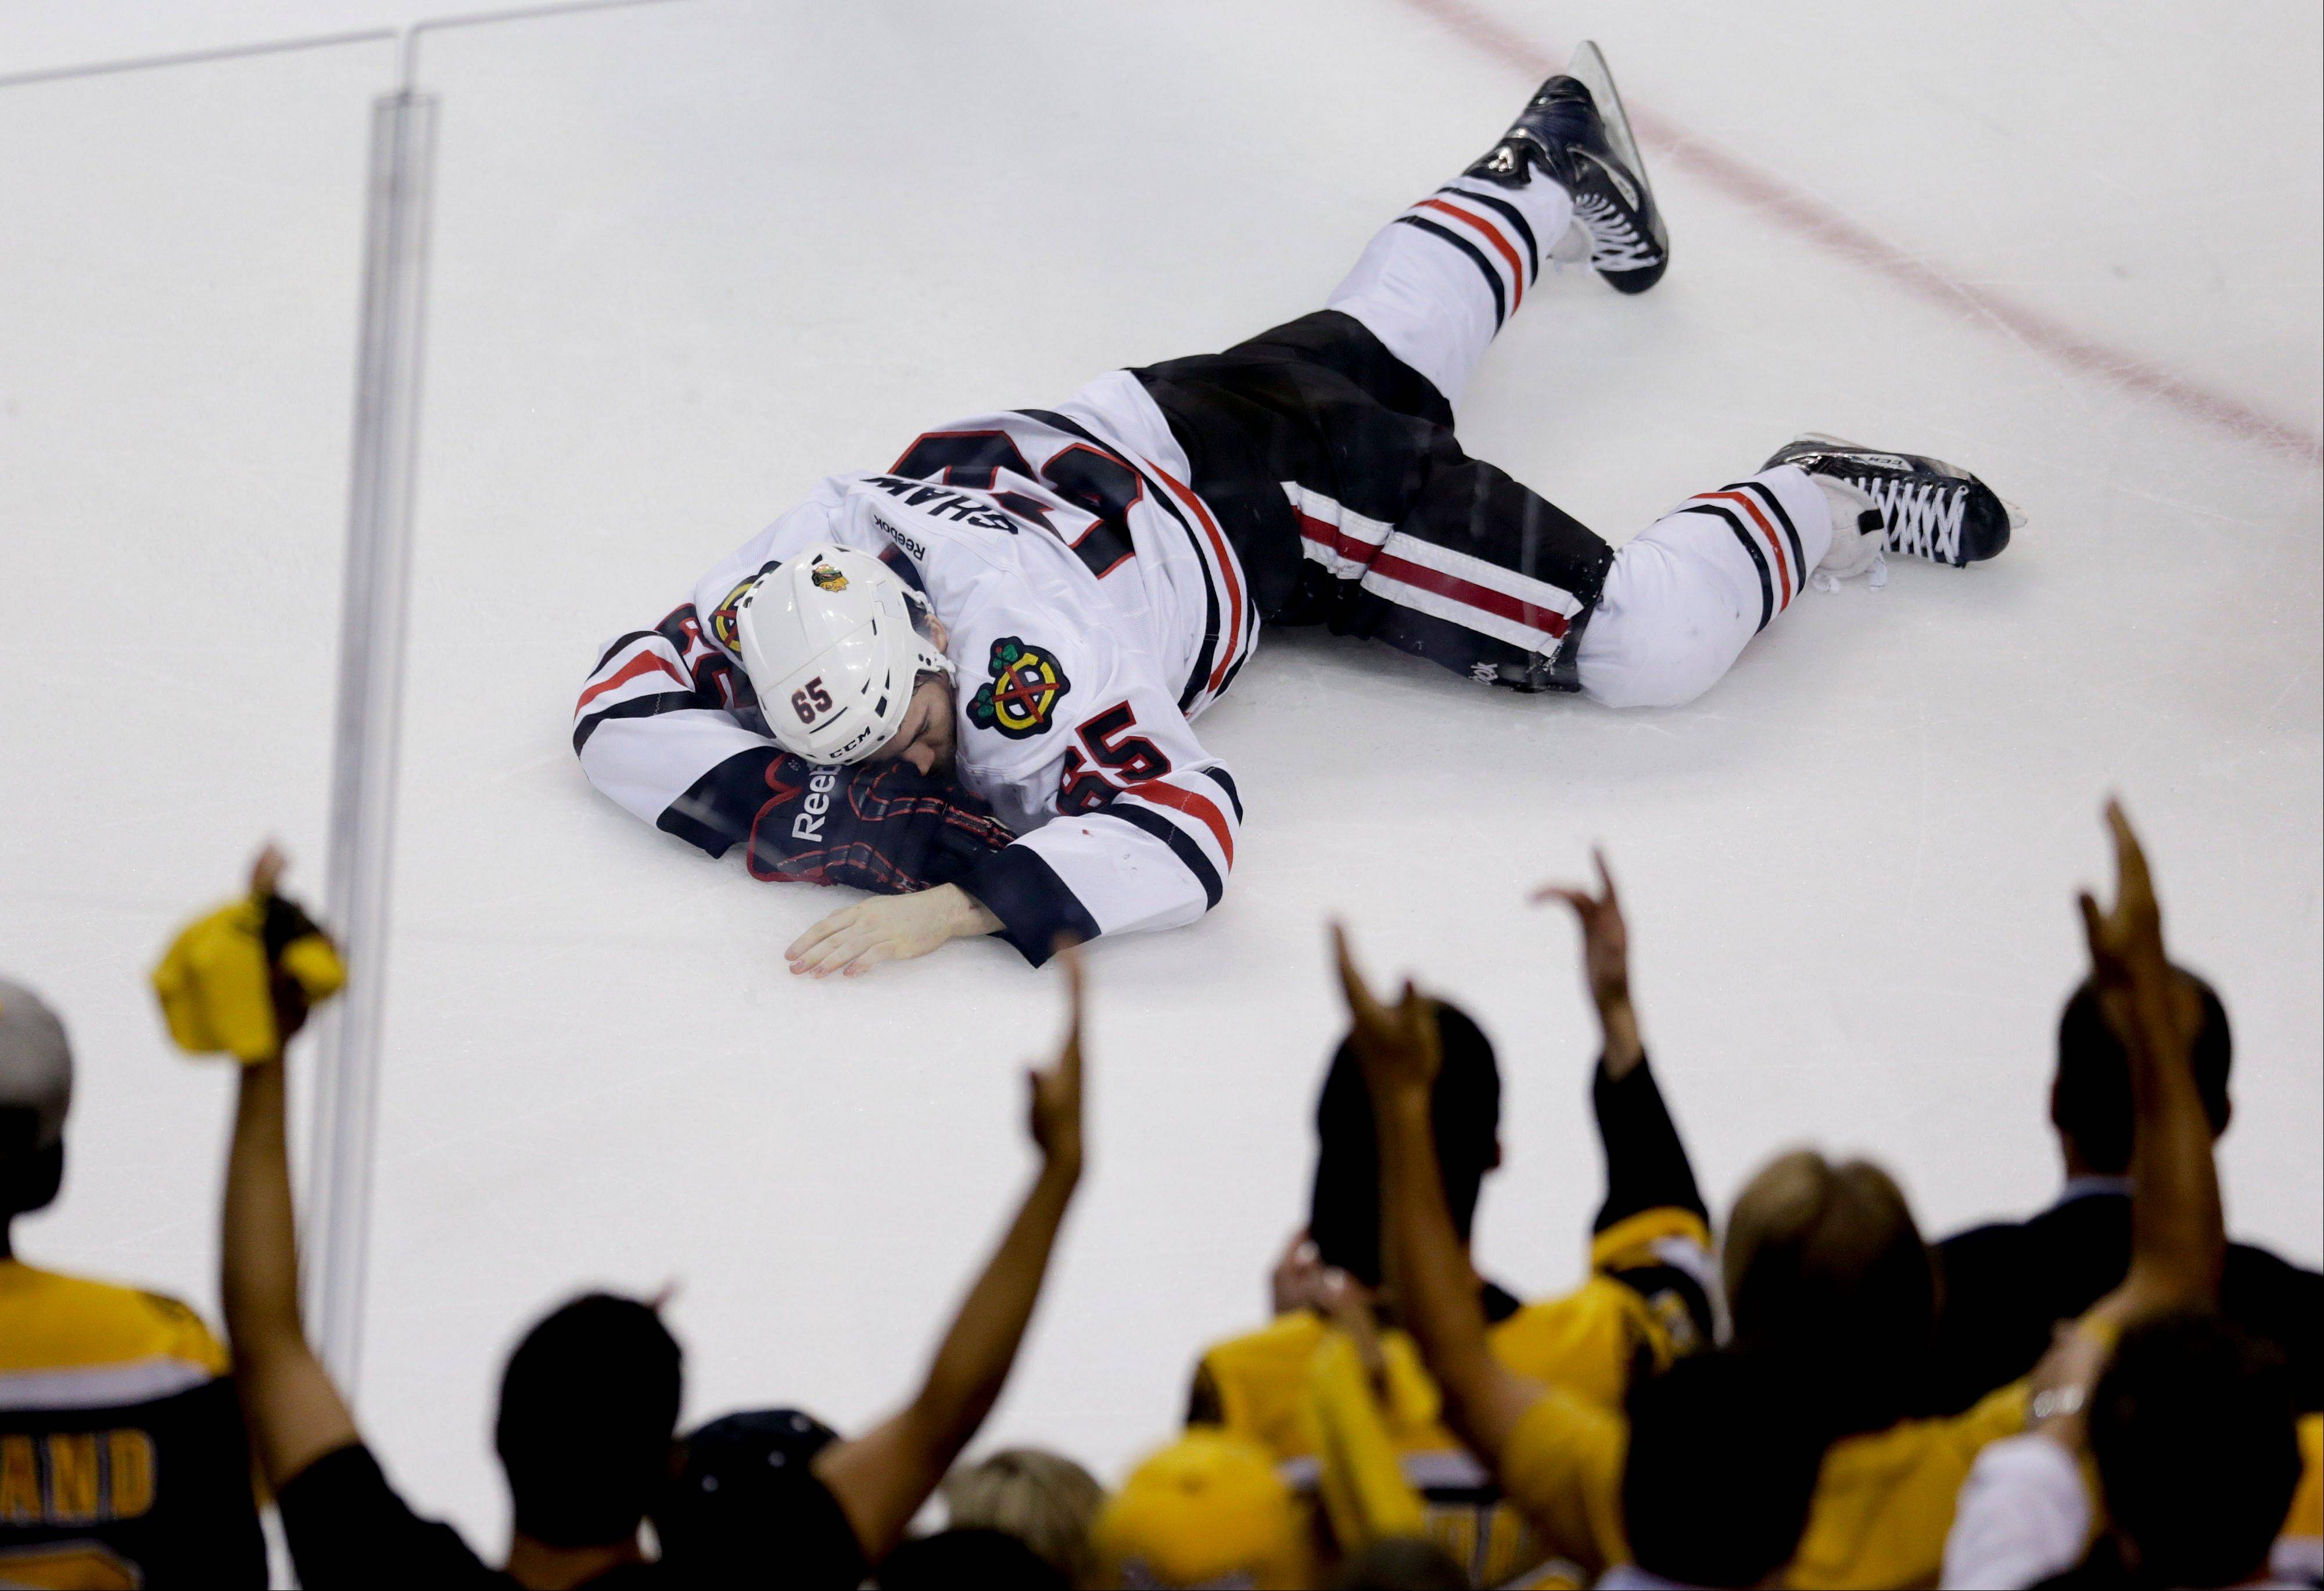 Chicago Blackhawks center Andrew Shaw lays on the ice after taking a puck to the face against the Boston Bruins during the first period in Game 6 of the NHL Stanley Cup Finals, Monday, June 24, 2013, in Boston.